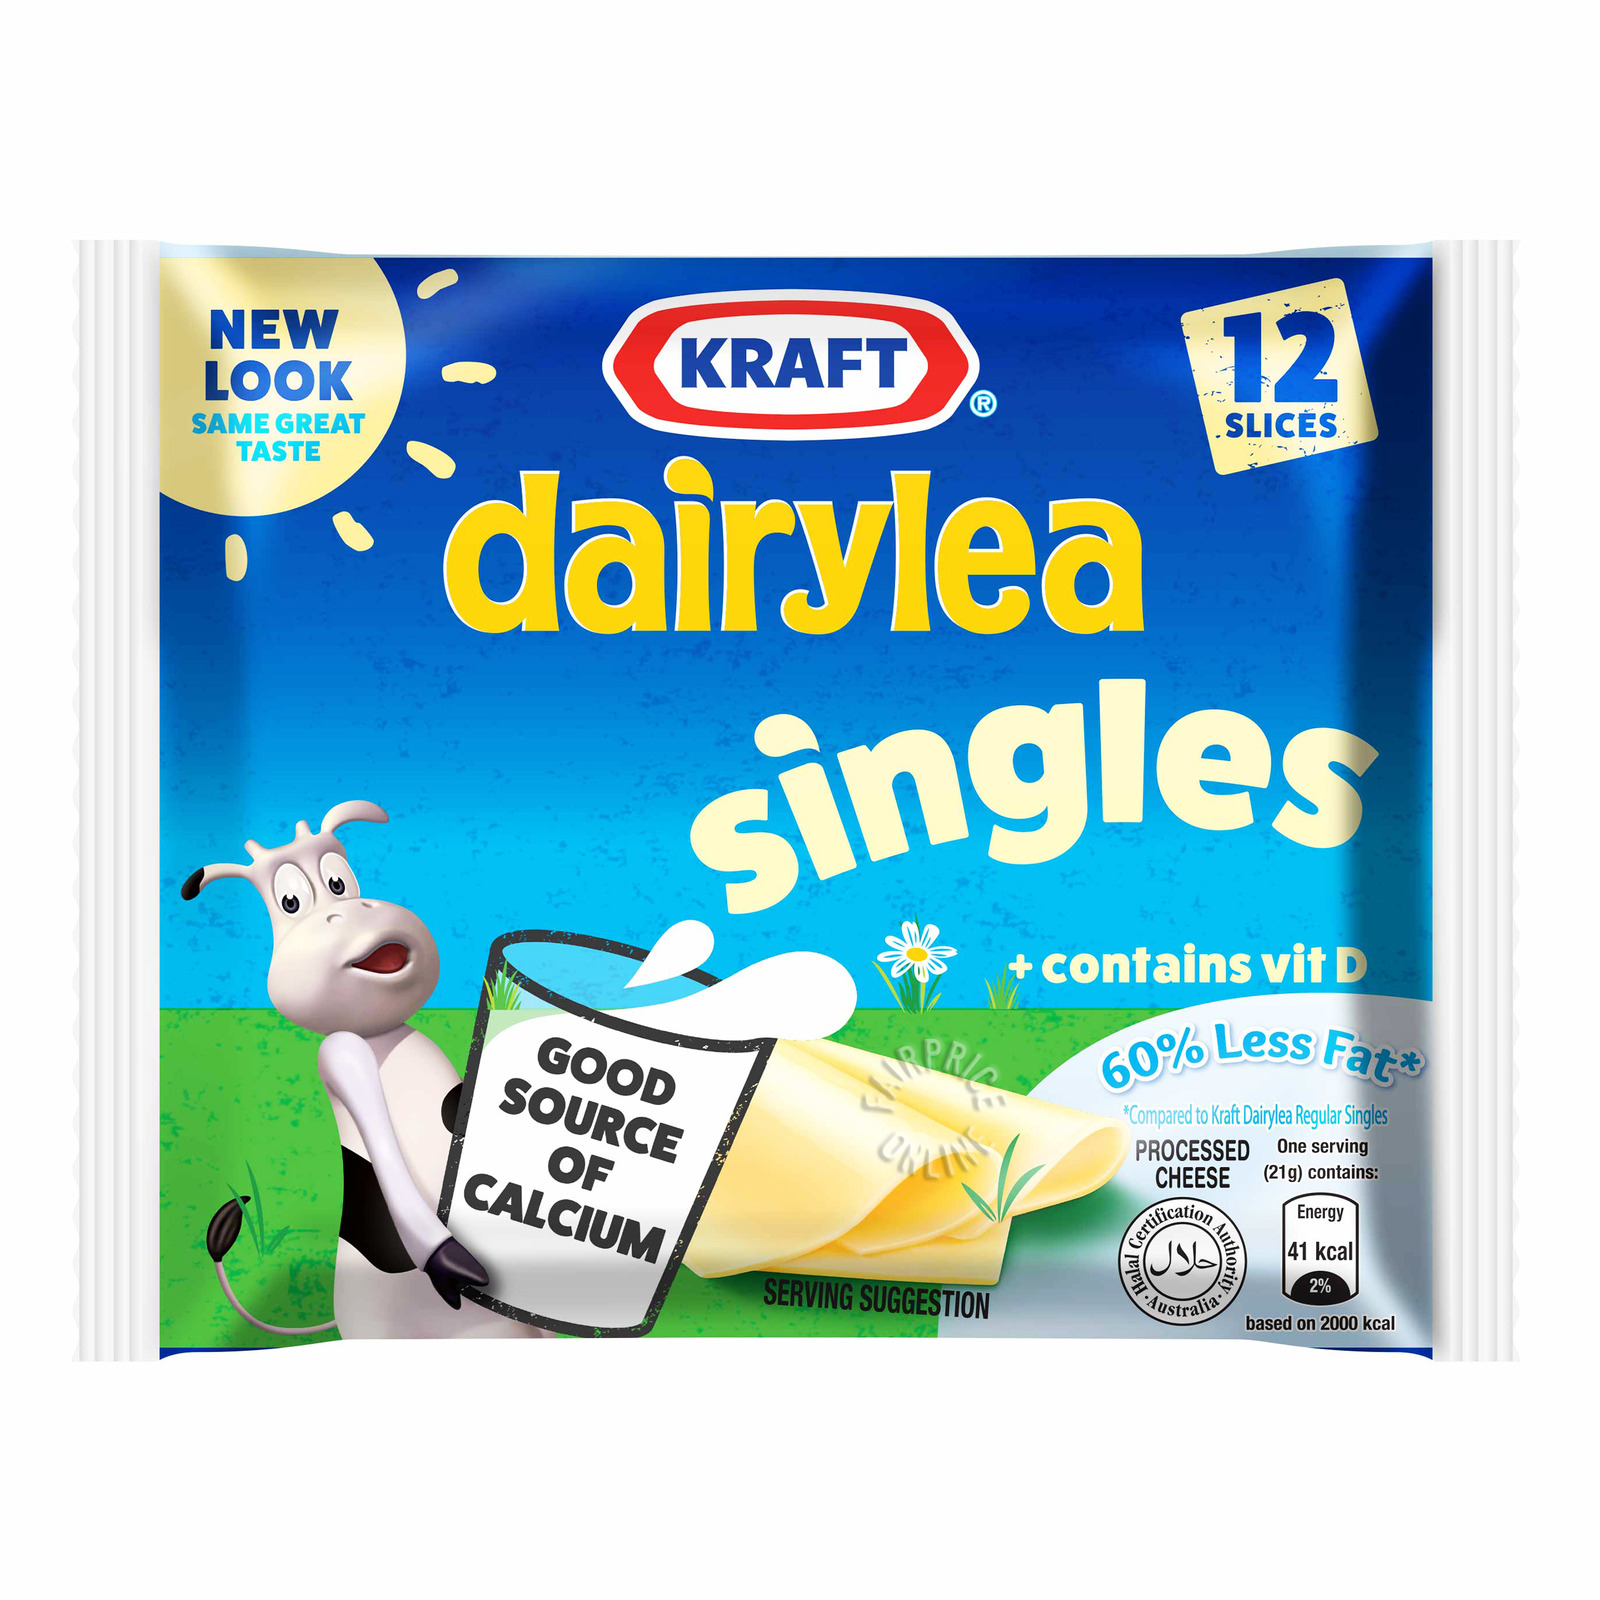 Kraft Singles Hi-Calcium 60% Less Fat Cheese Slices - 12 Slices